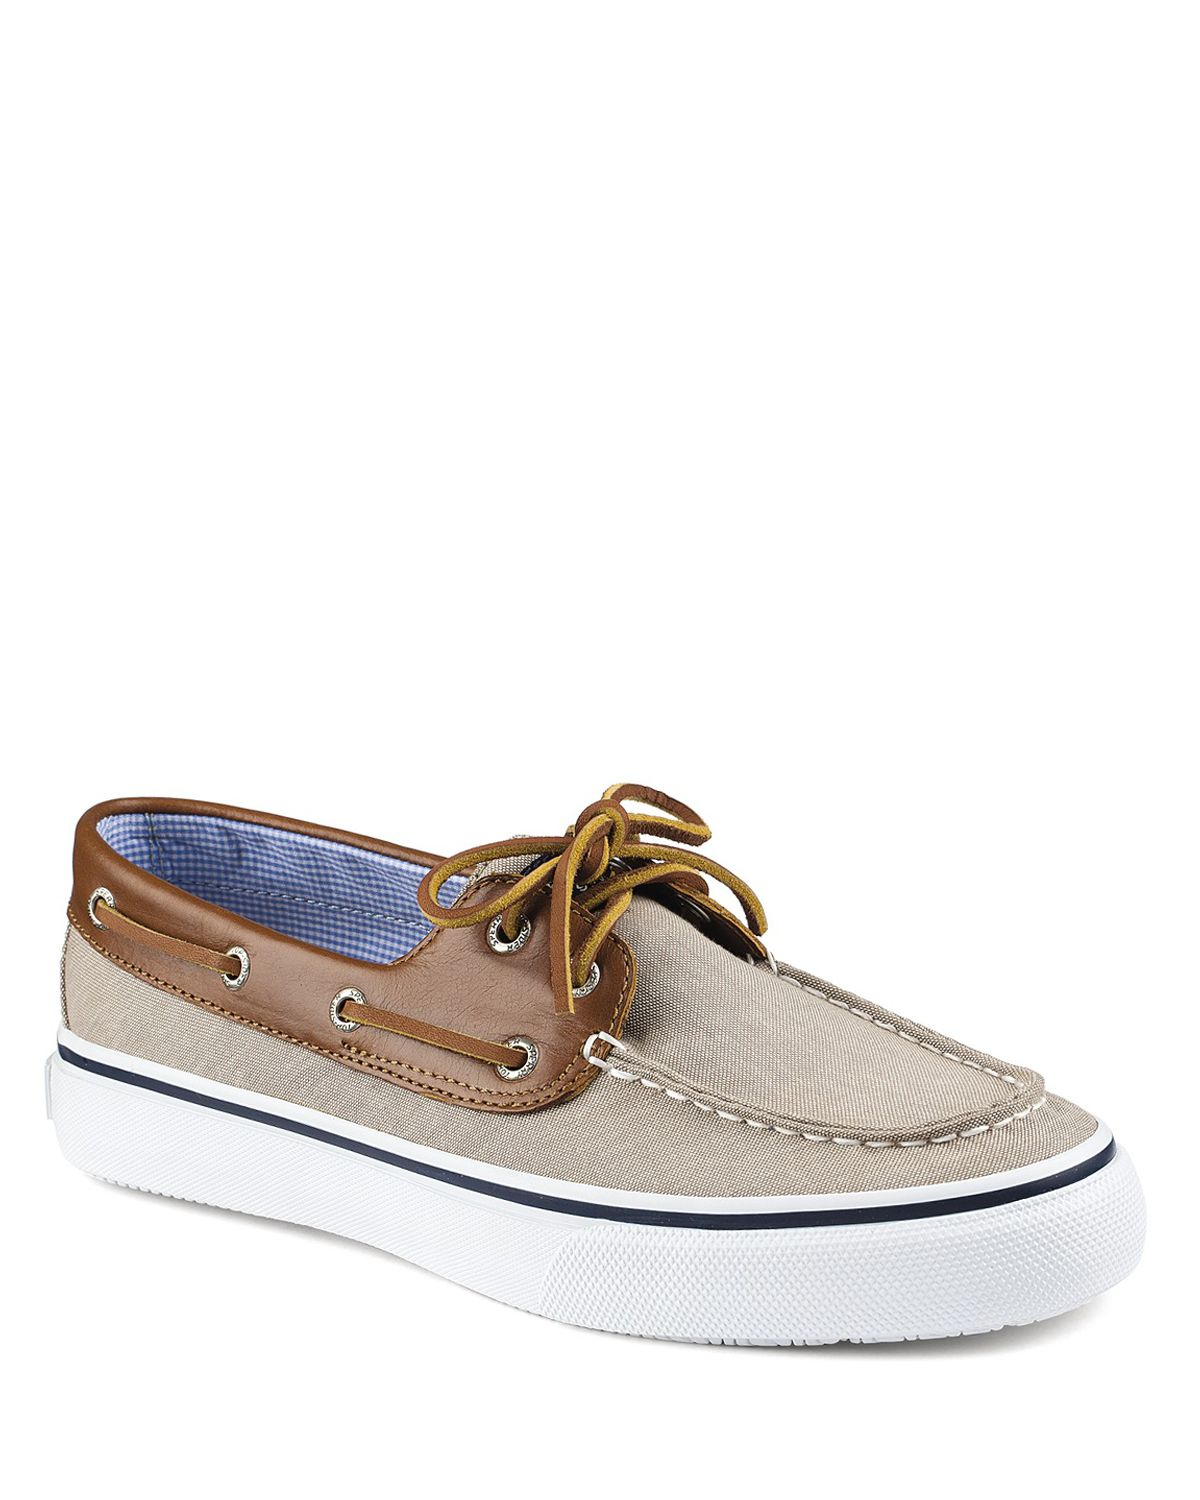 a1ccda63cc7456 Sperry Top-Sider Bahama 2-Eye Chambray Boat Shoes in Blue for Men - Lyst